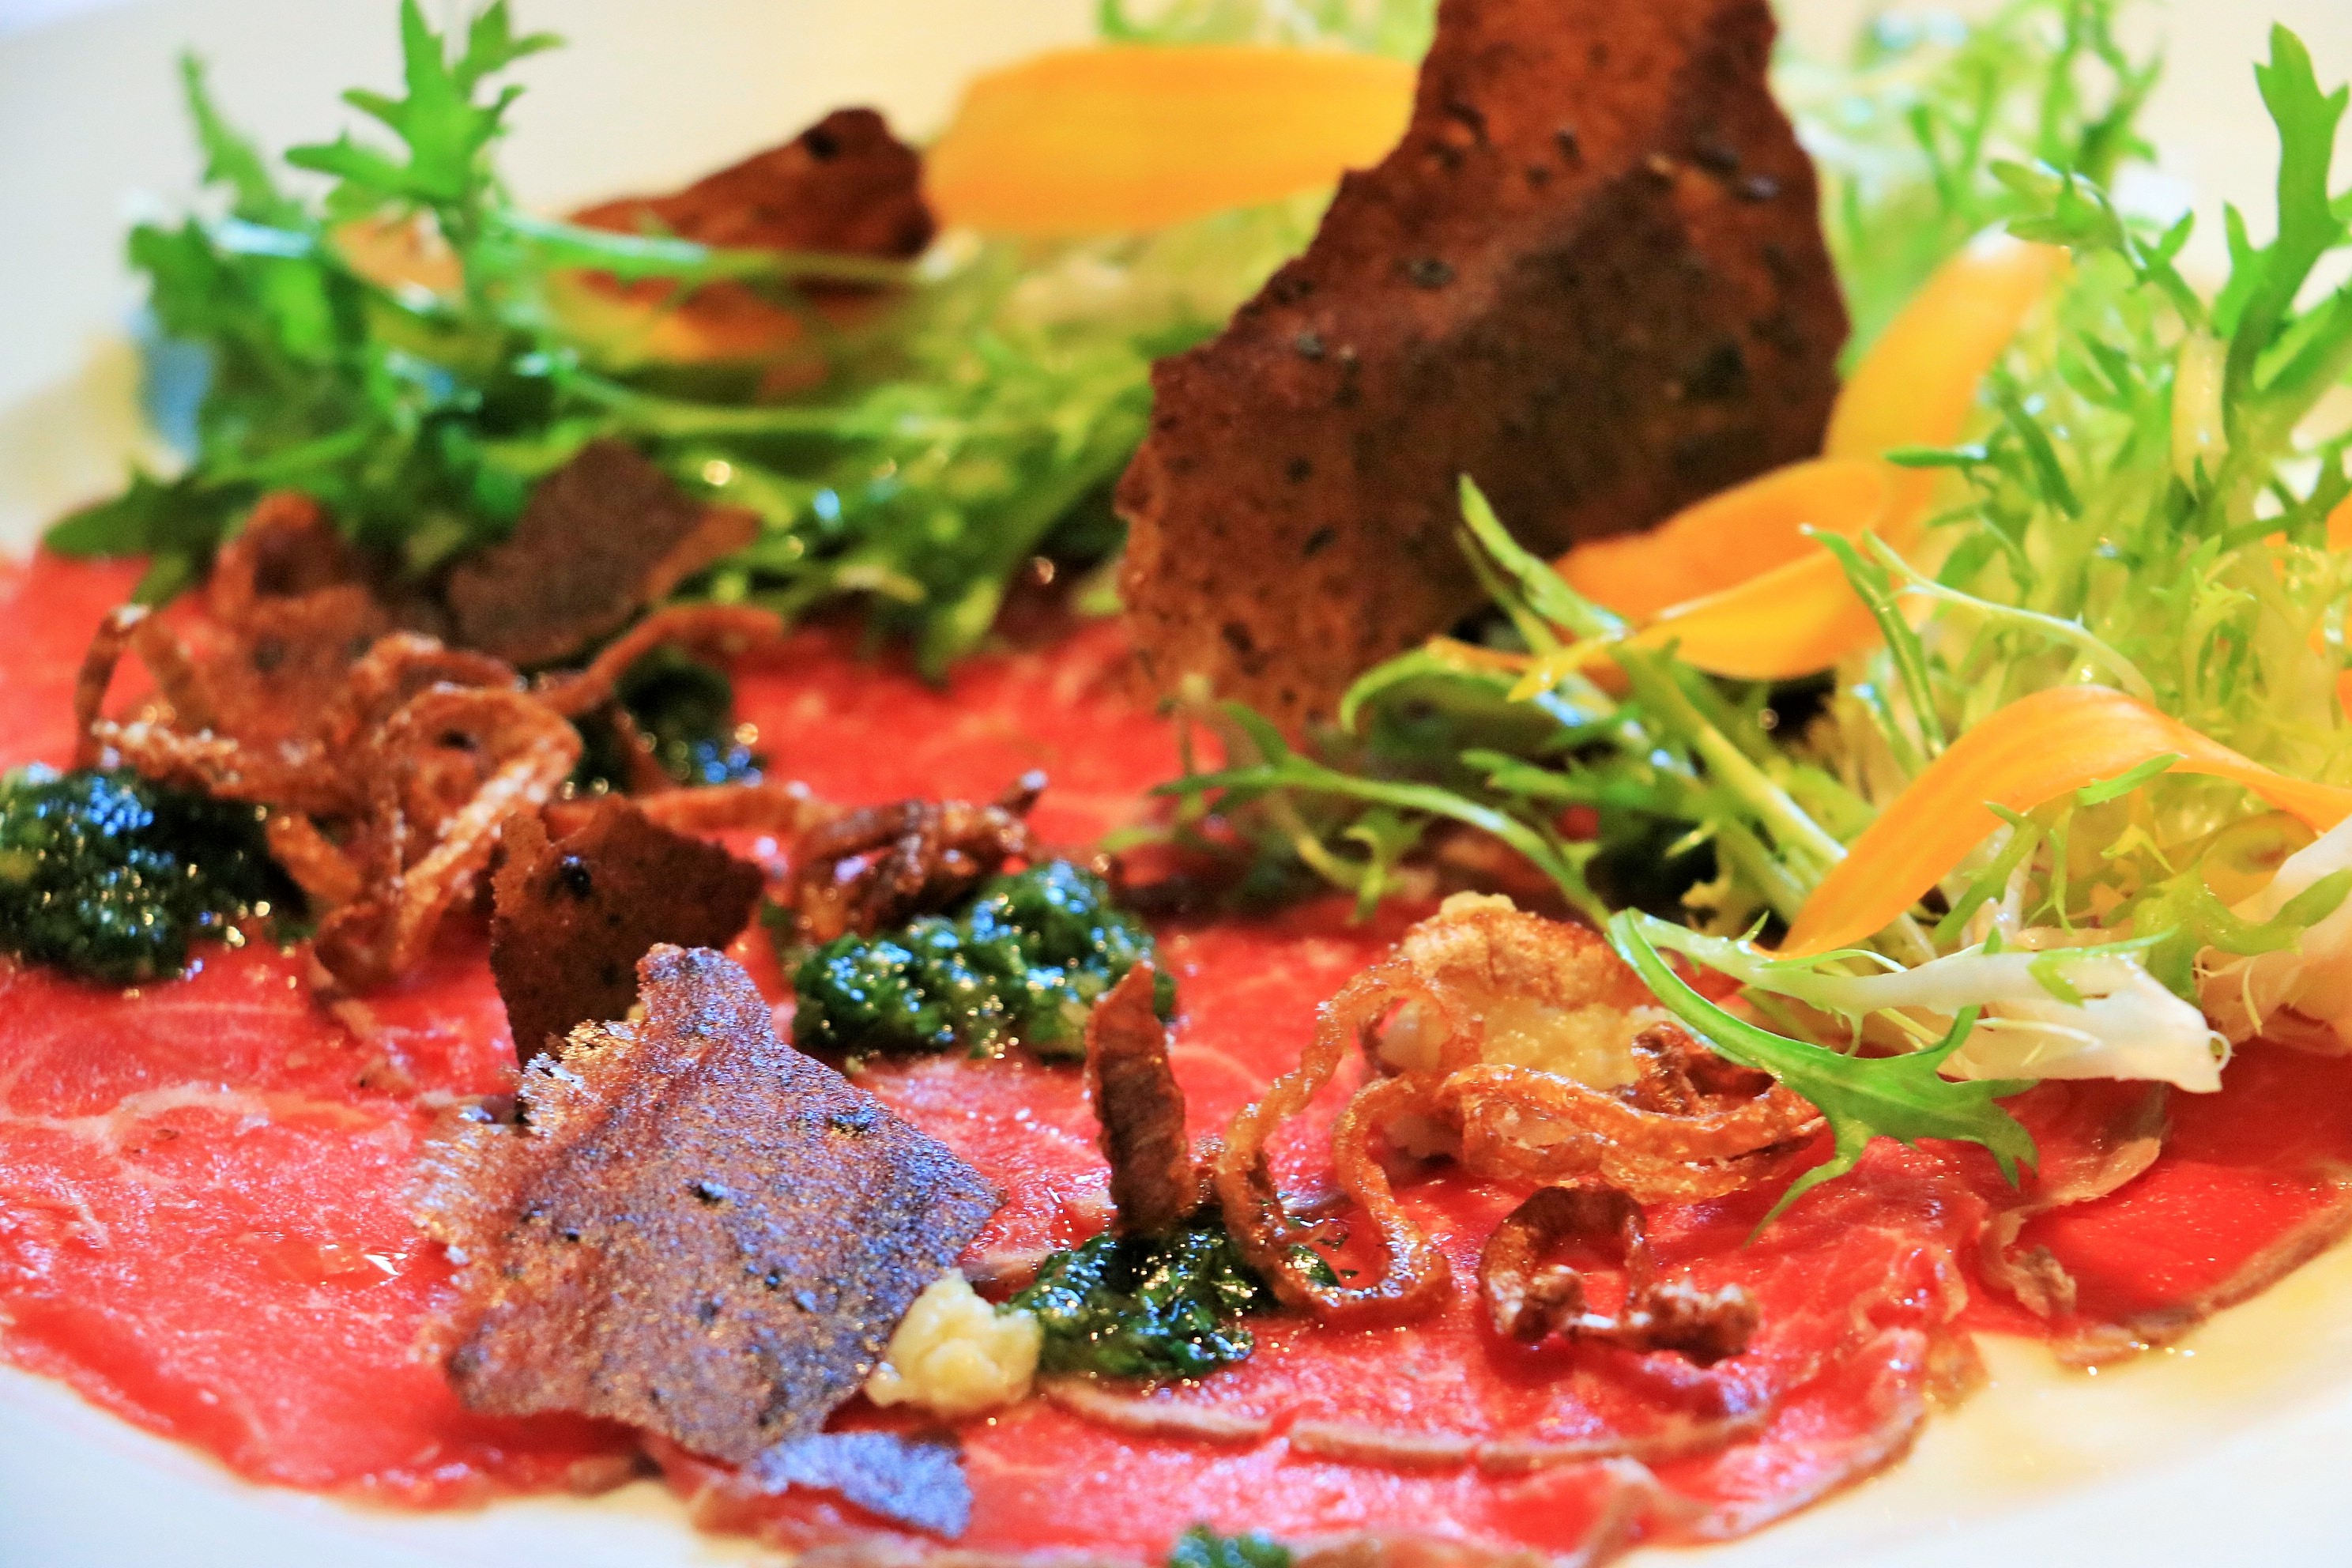 Beef Carpaccio at Spruce